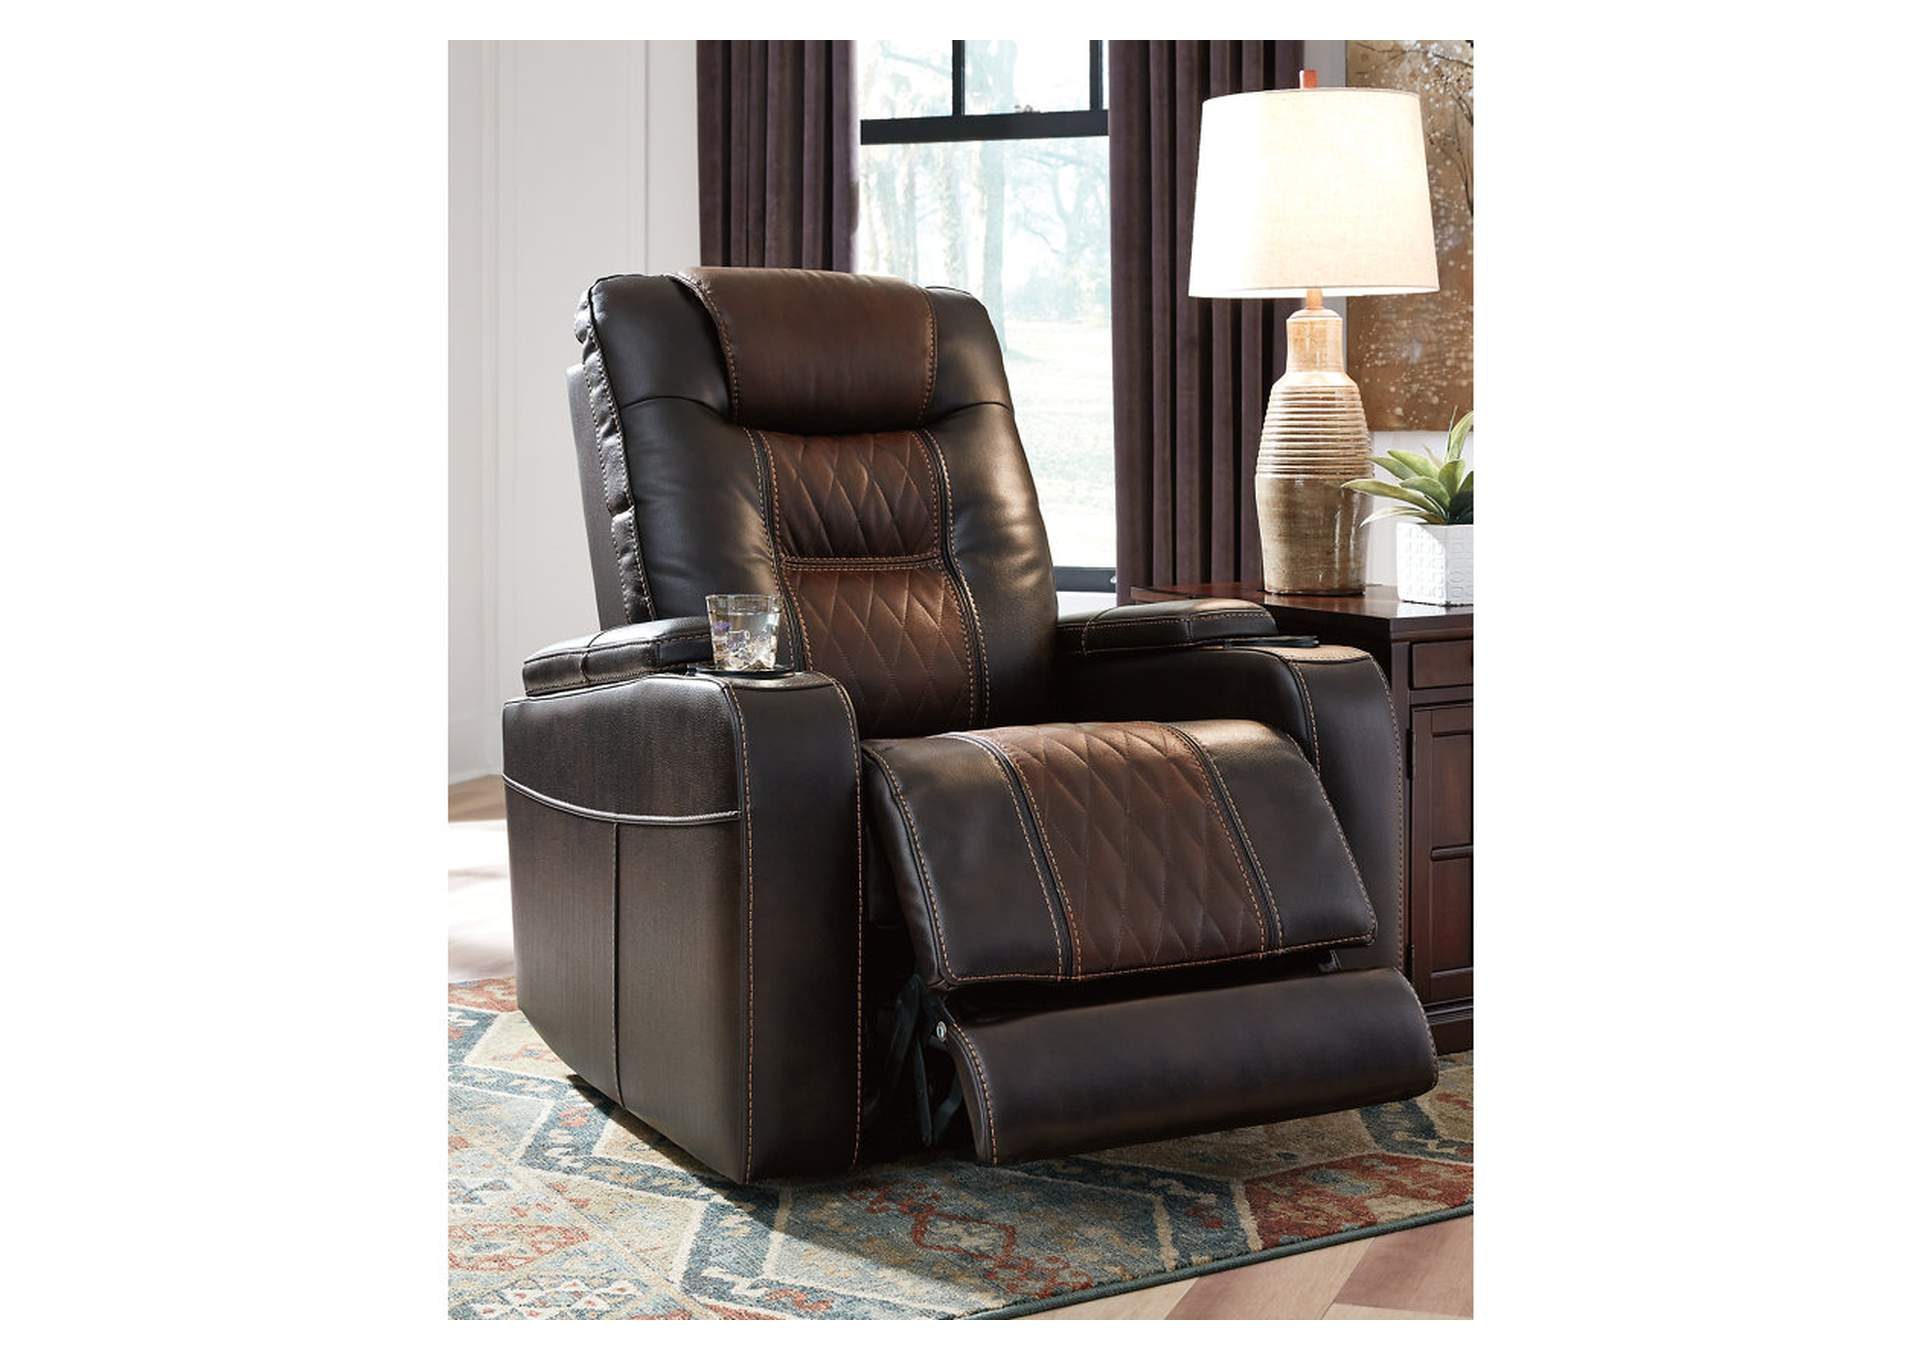 Composer Brown Power Recliner,Signature Design By Ashley